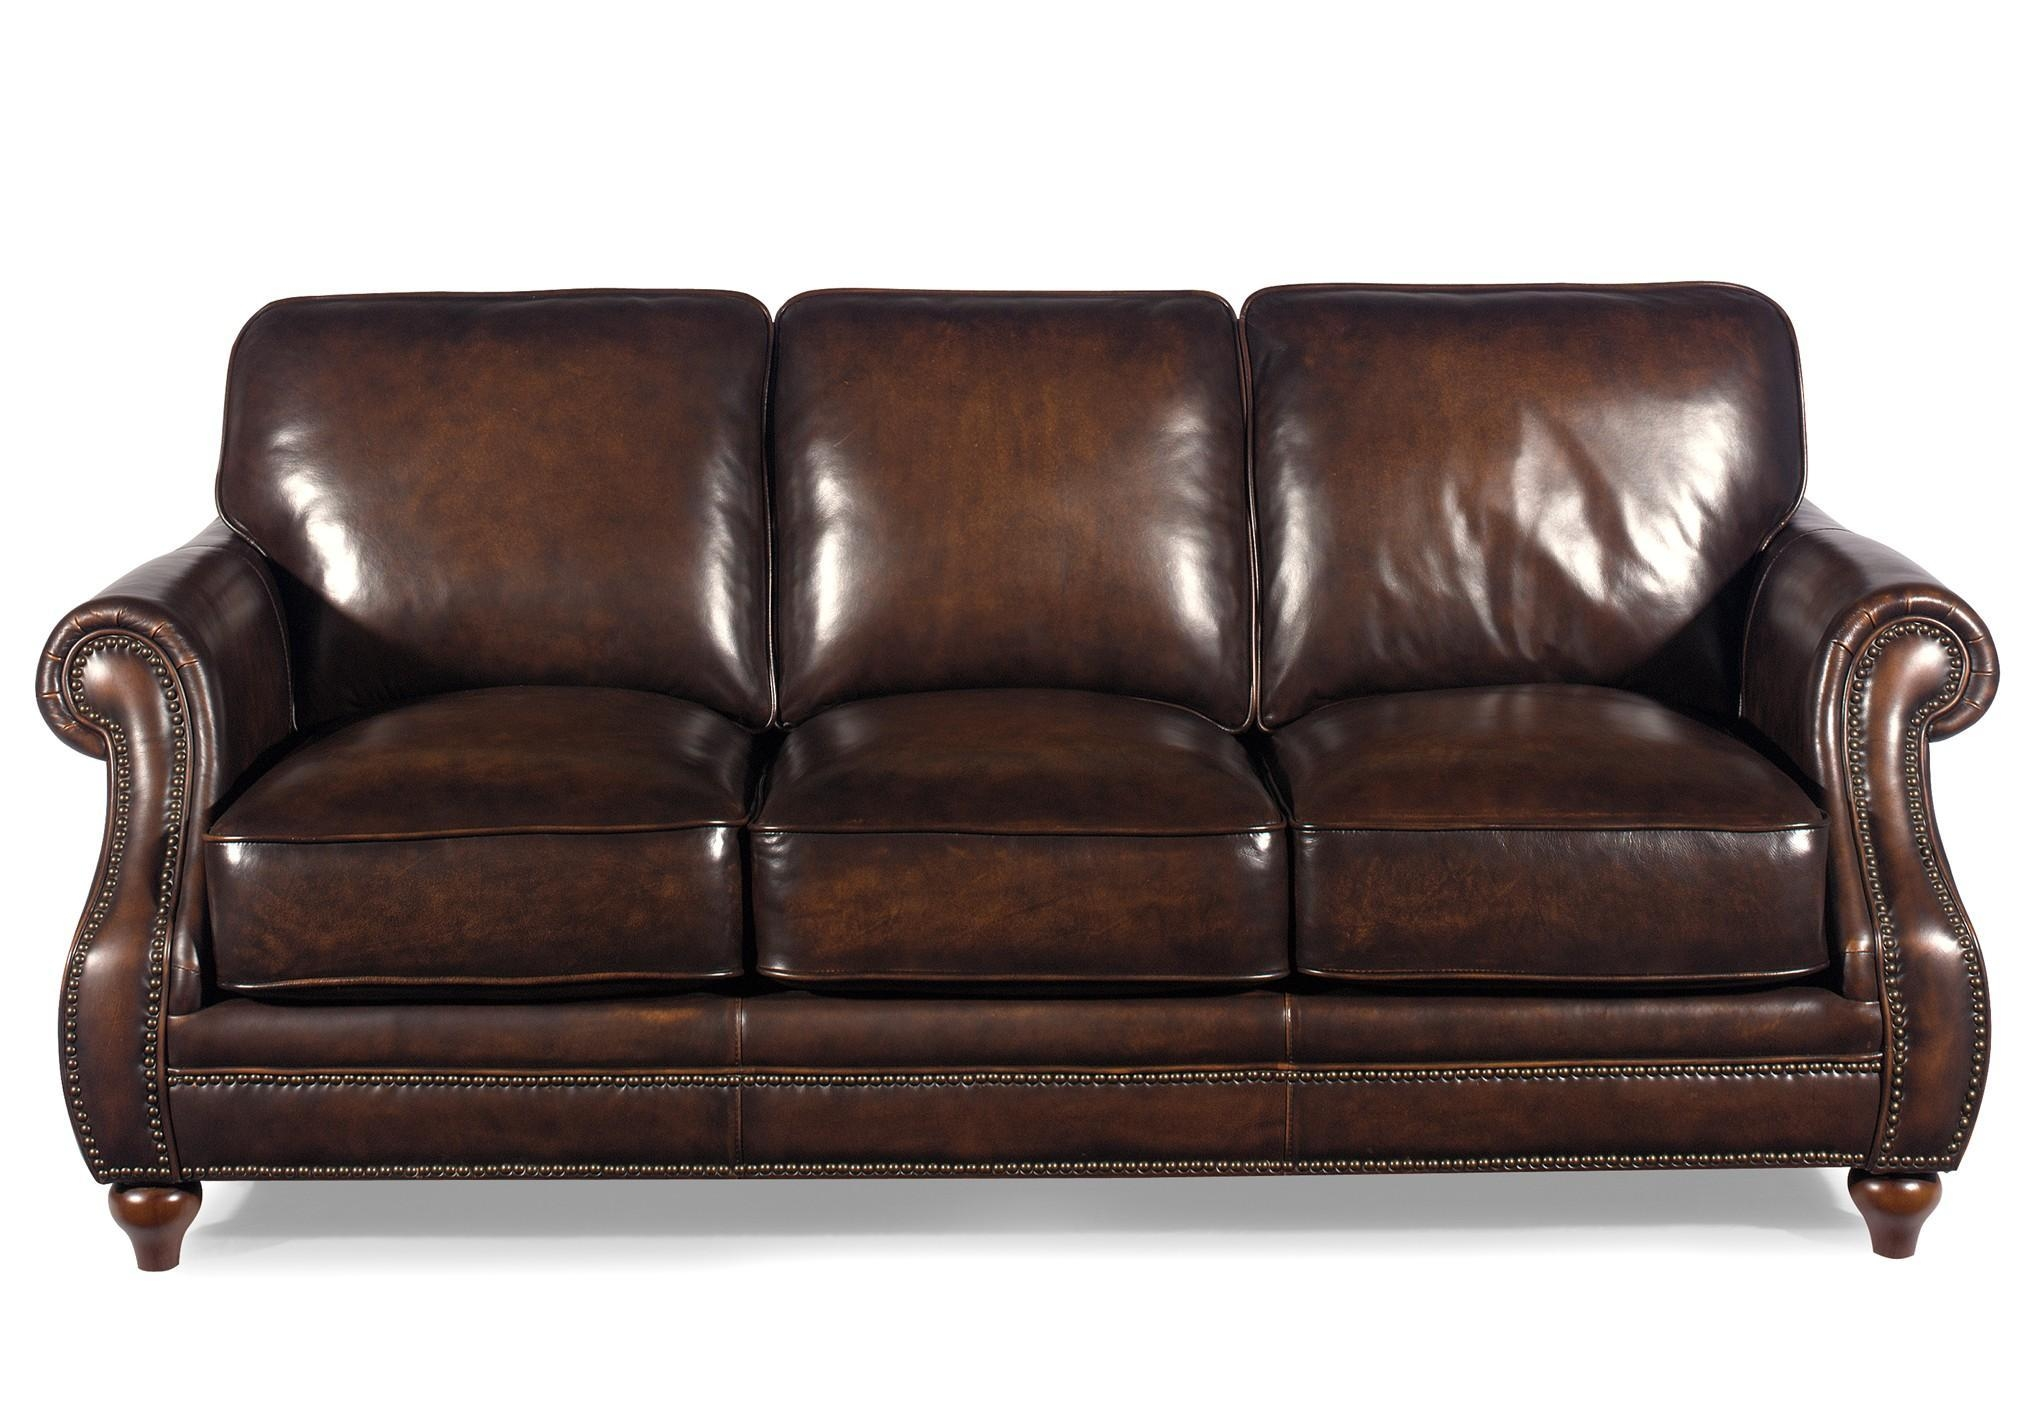 Traditional Leather Sofa With Rolled Arms And Nailhead Trim With Regard To Brown Leather Sofas With Nailhead Trim (Image 19 of 20)